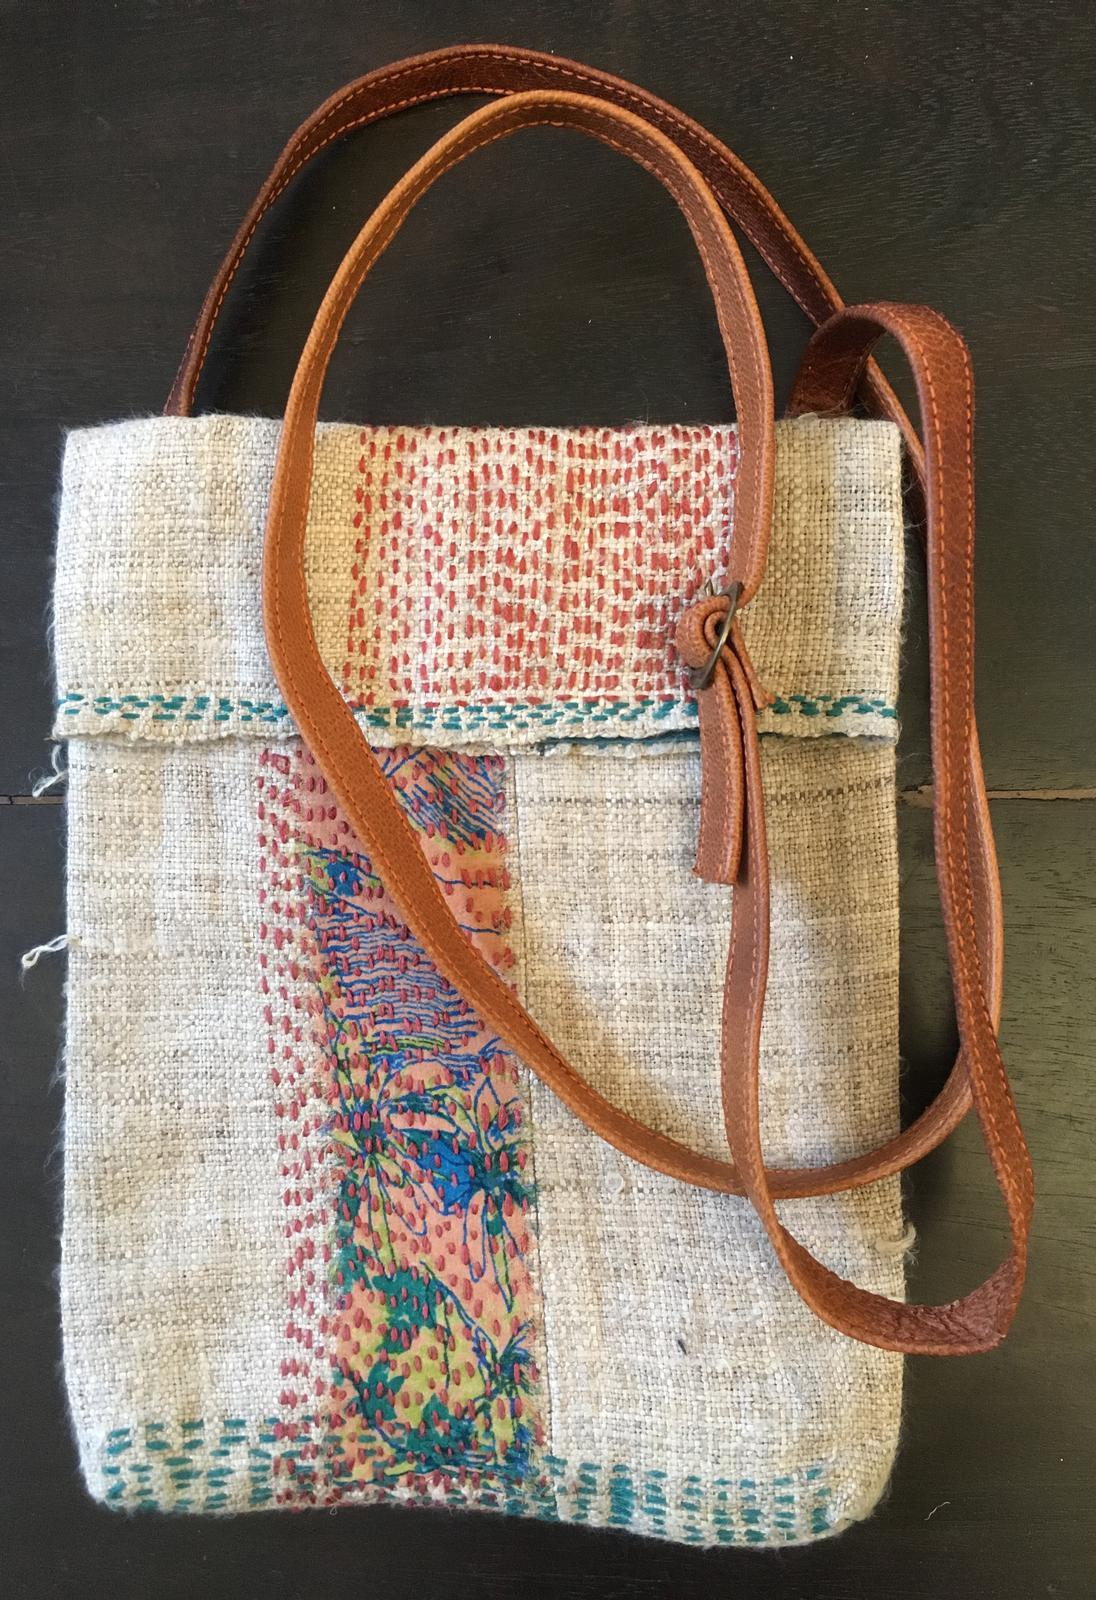 Hemp fabric and handstitched cross-body bag